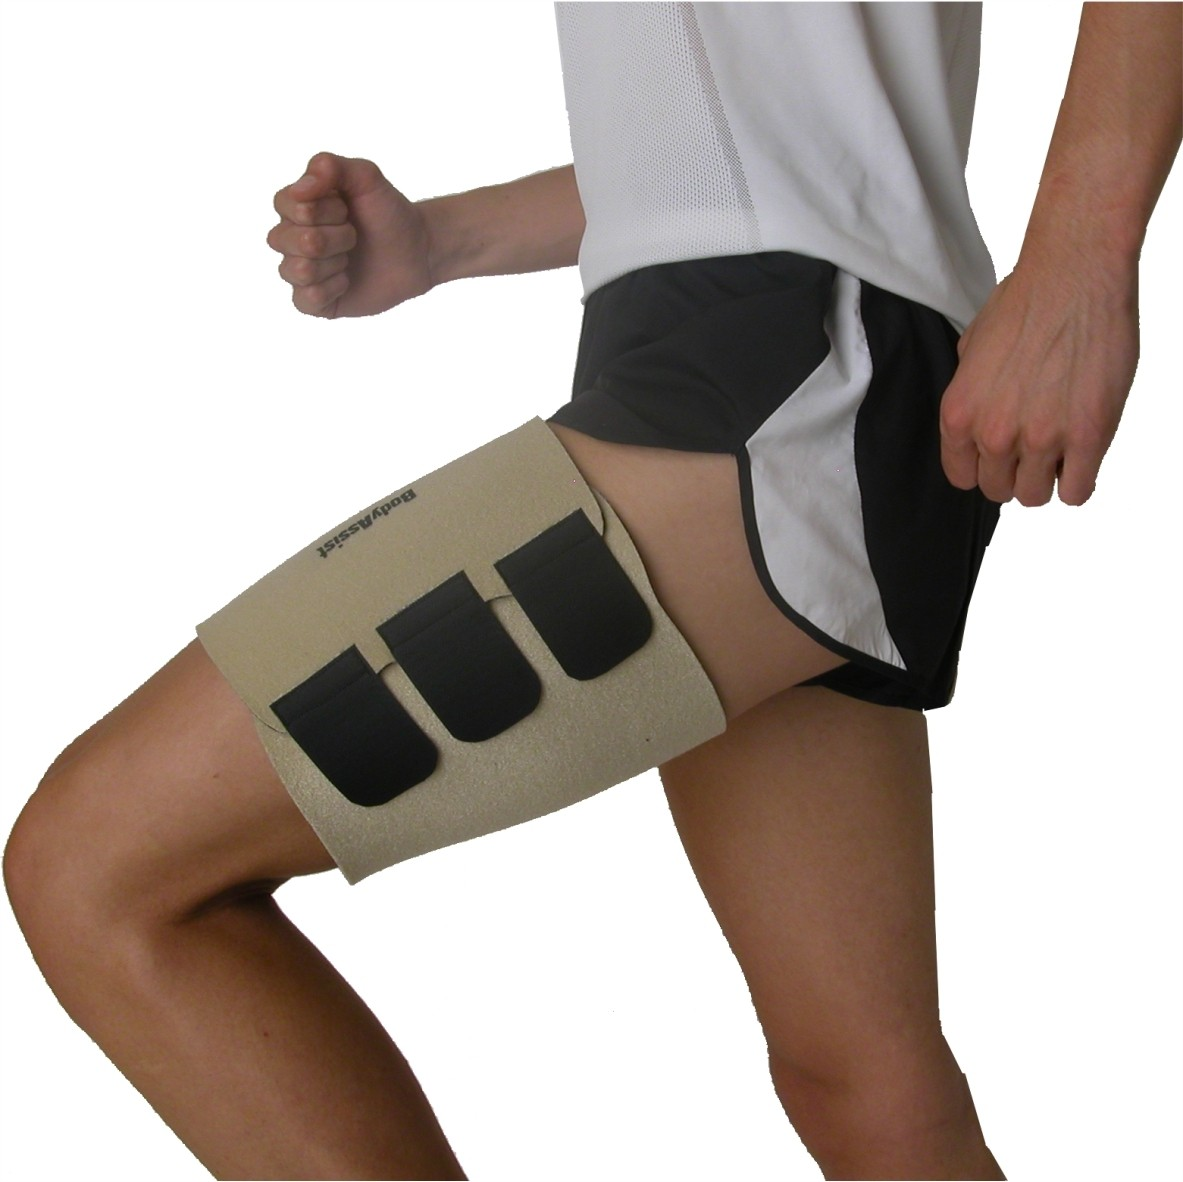 Bodyassist One Size Thermal Thigh Wrap